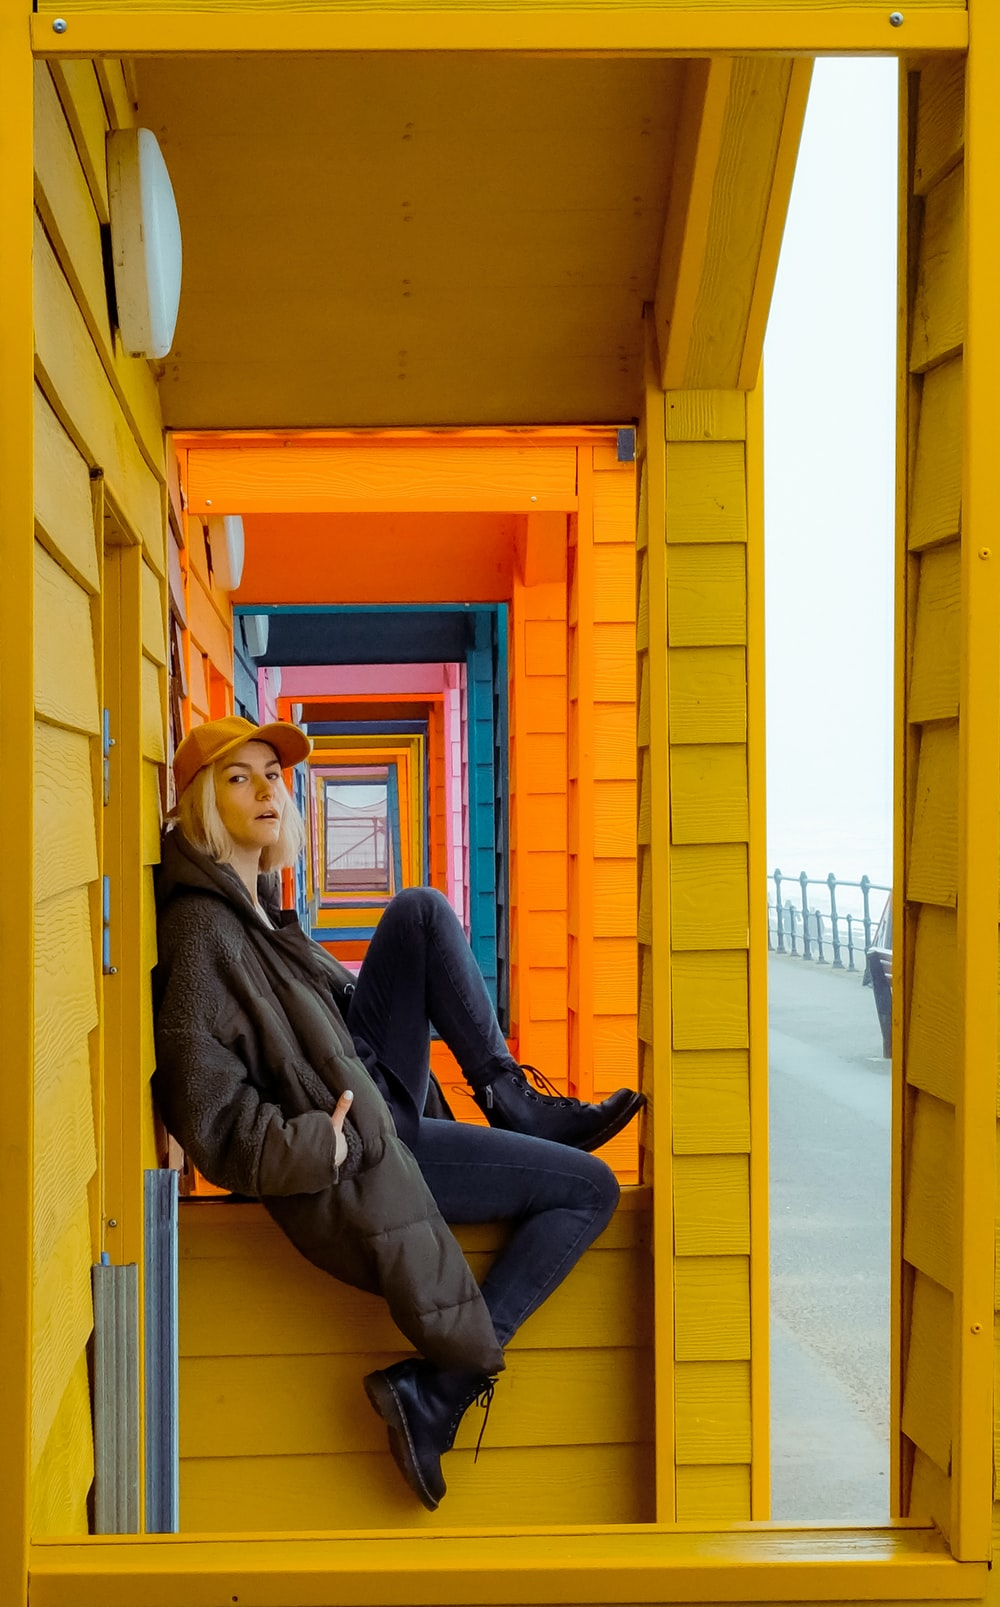 woman in brown jacket and blue denim jeans sitting on yellow wooden door during daytime